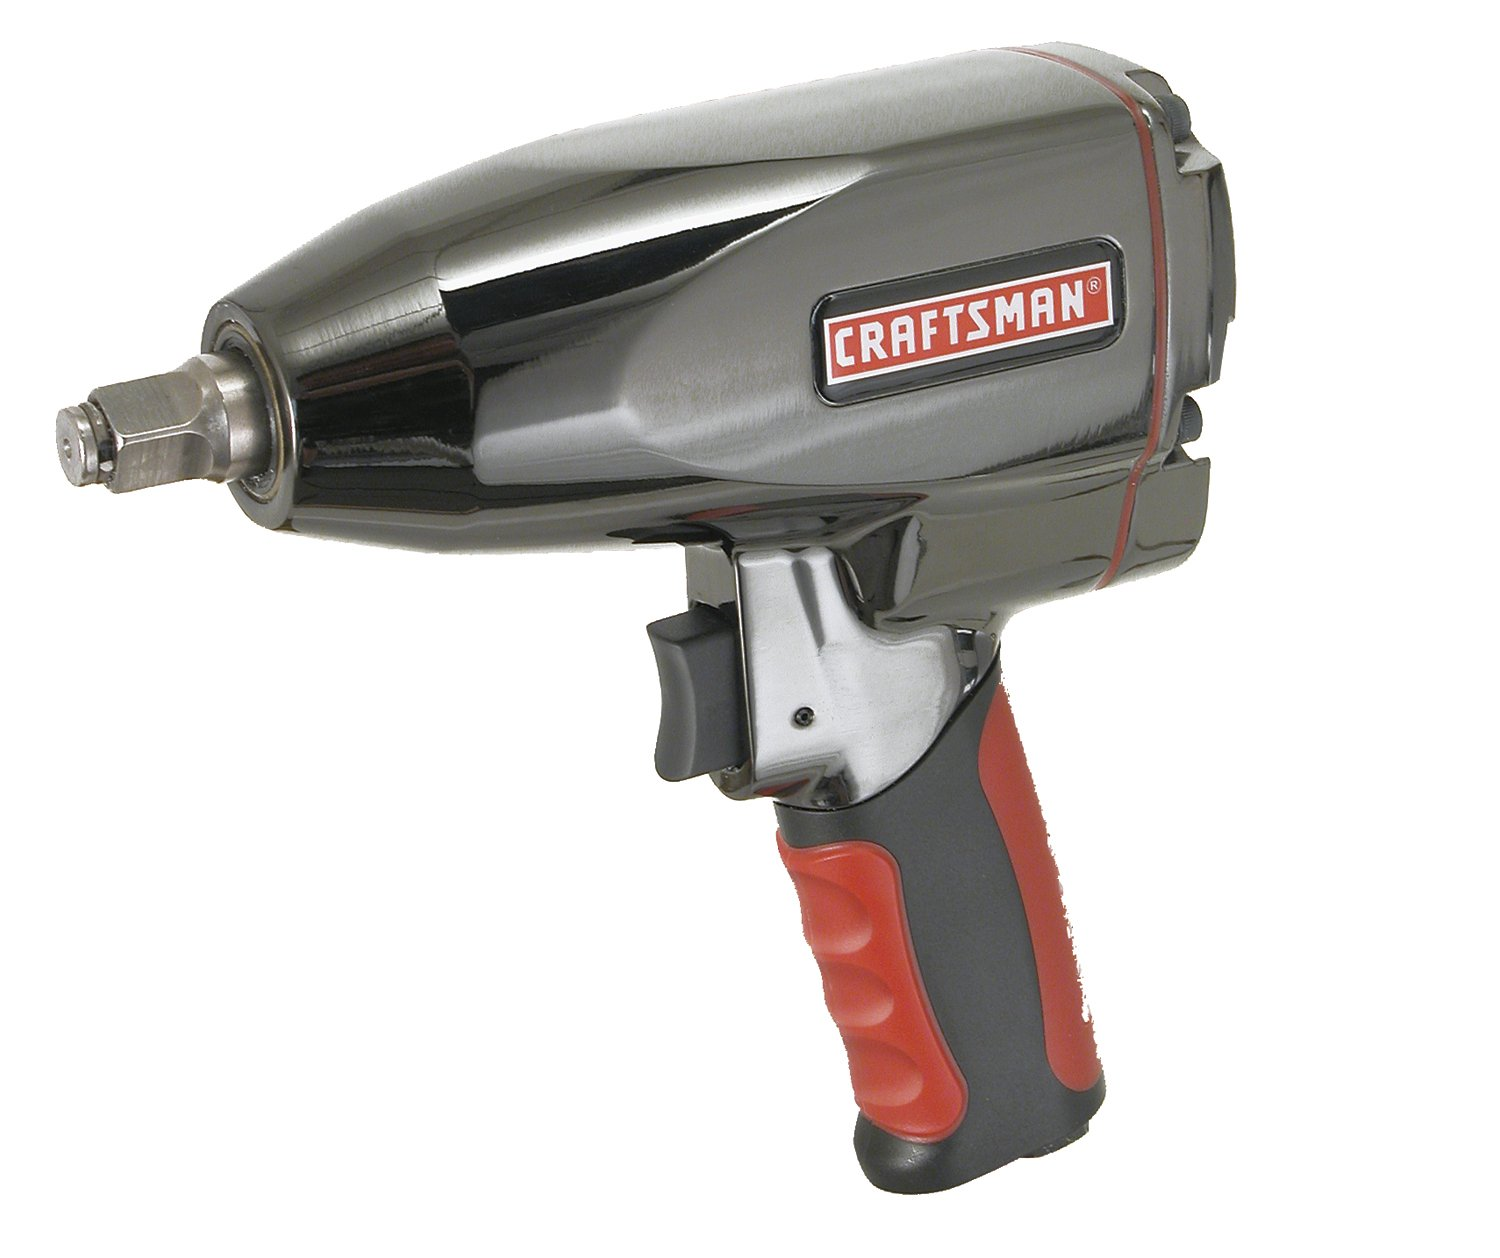 Craftsman 9-19983 Impact 1/2-Inch Impact Wrench Builders World Wholesale Distribution